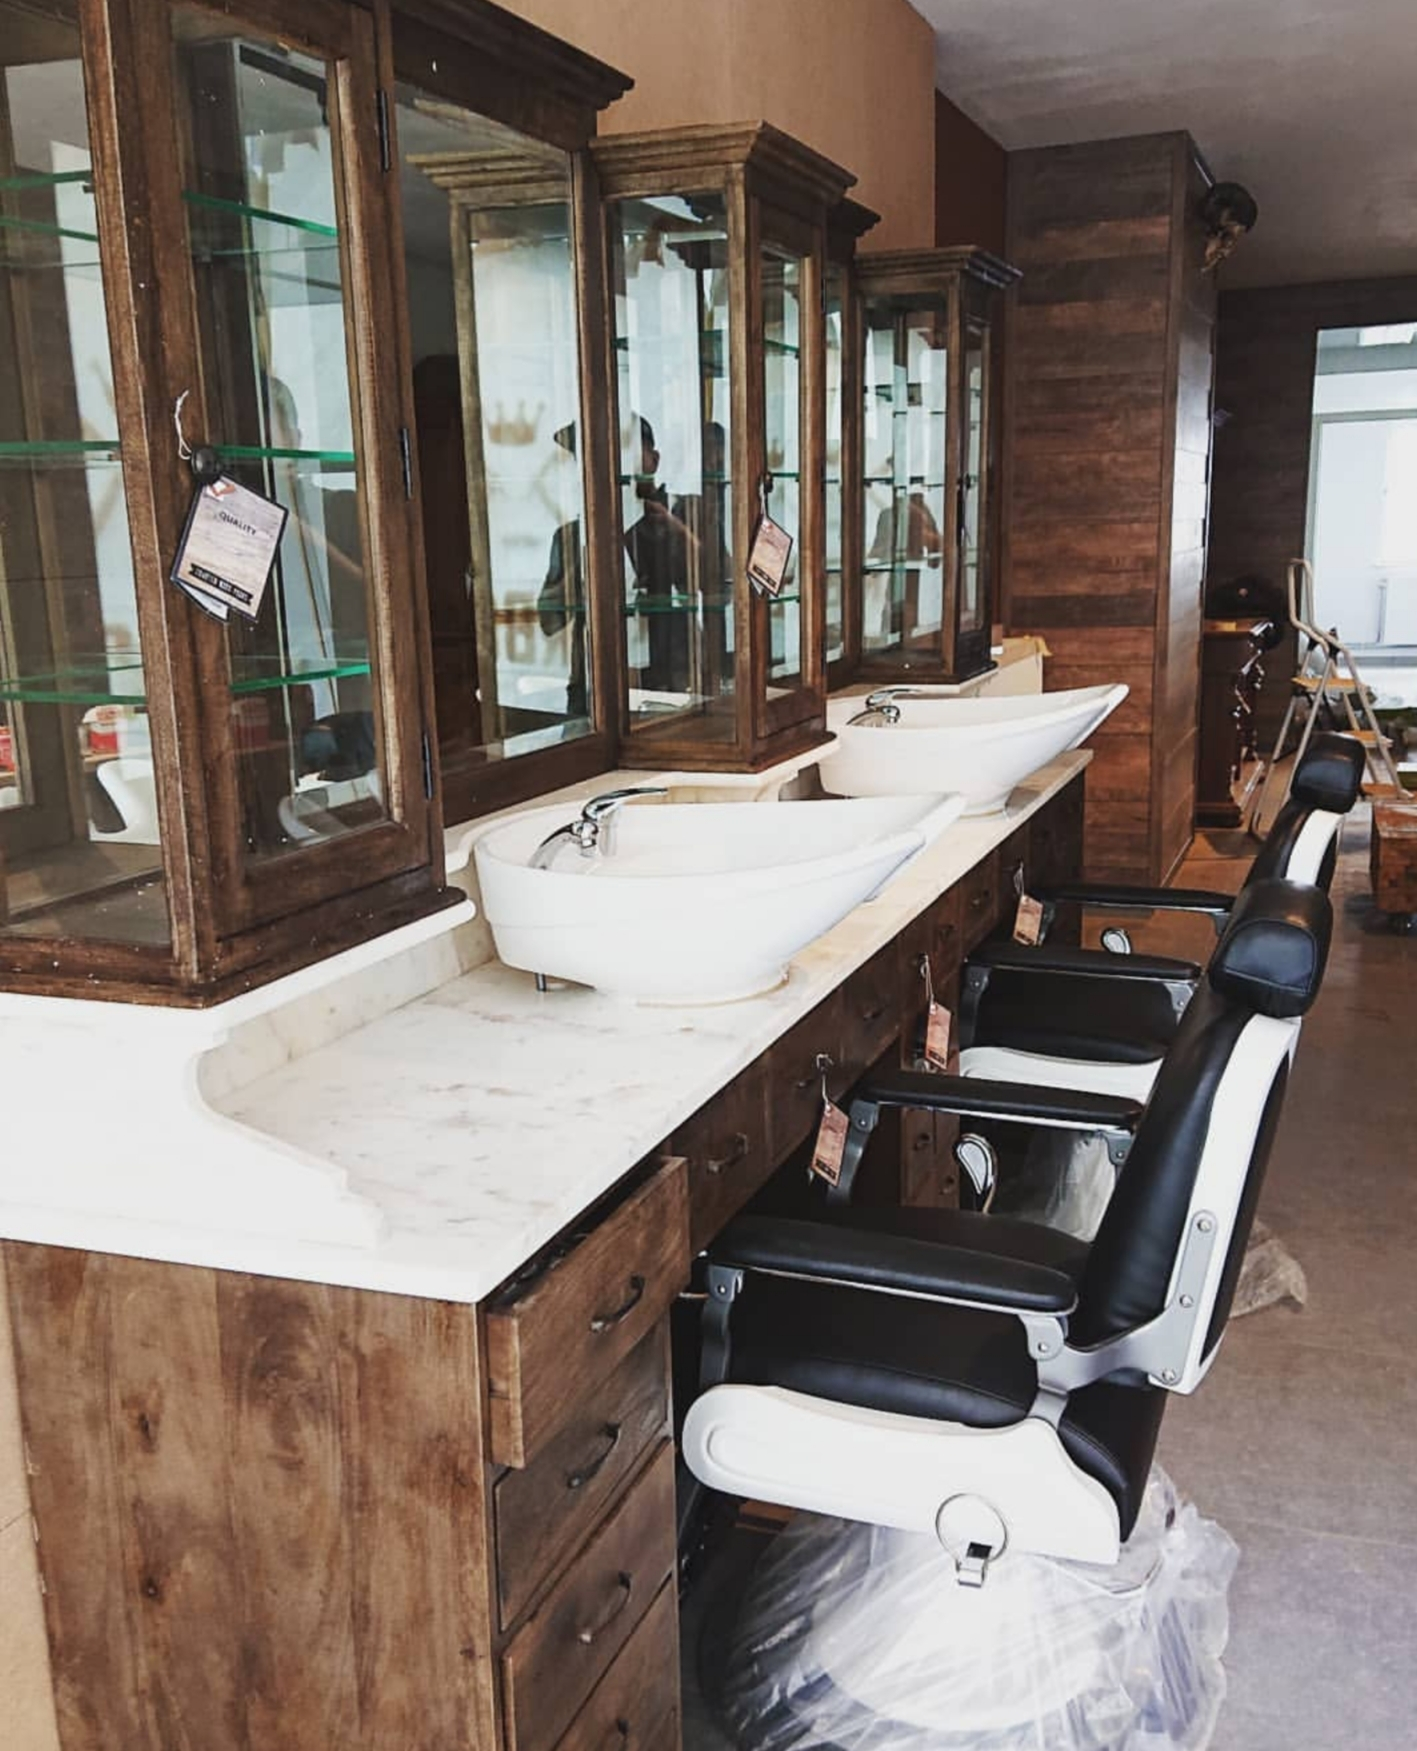 Barberstation   Vintage   Barberchairs   High quality   Stunning barber furniture   Handcrafted with pride